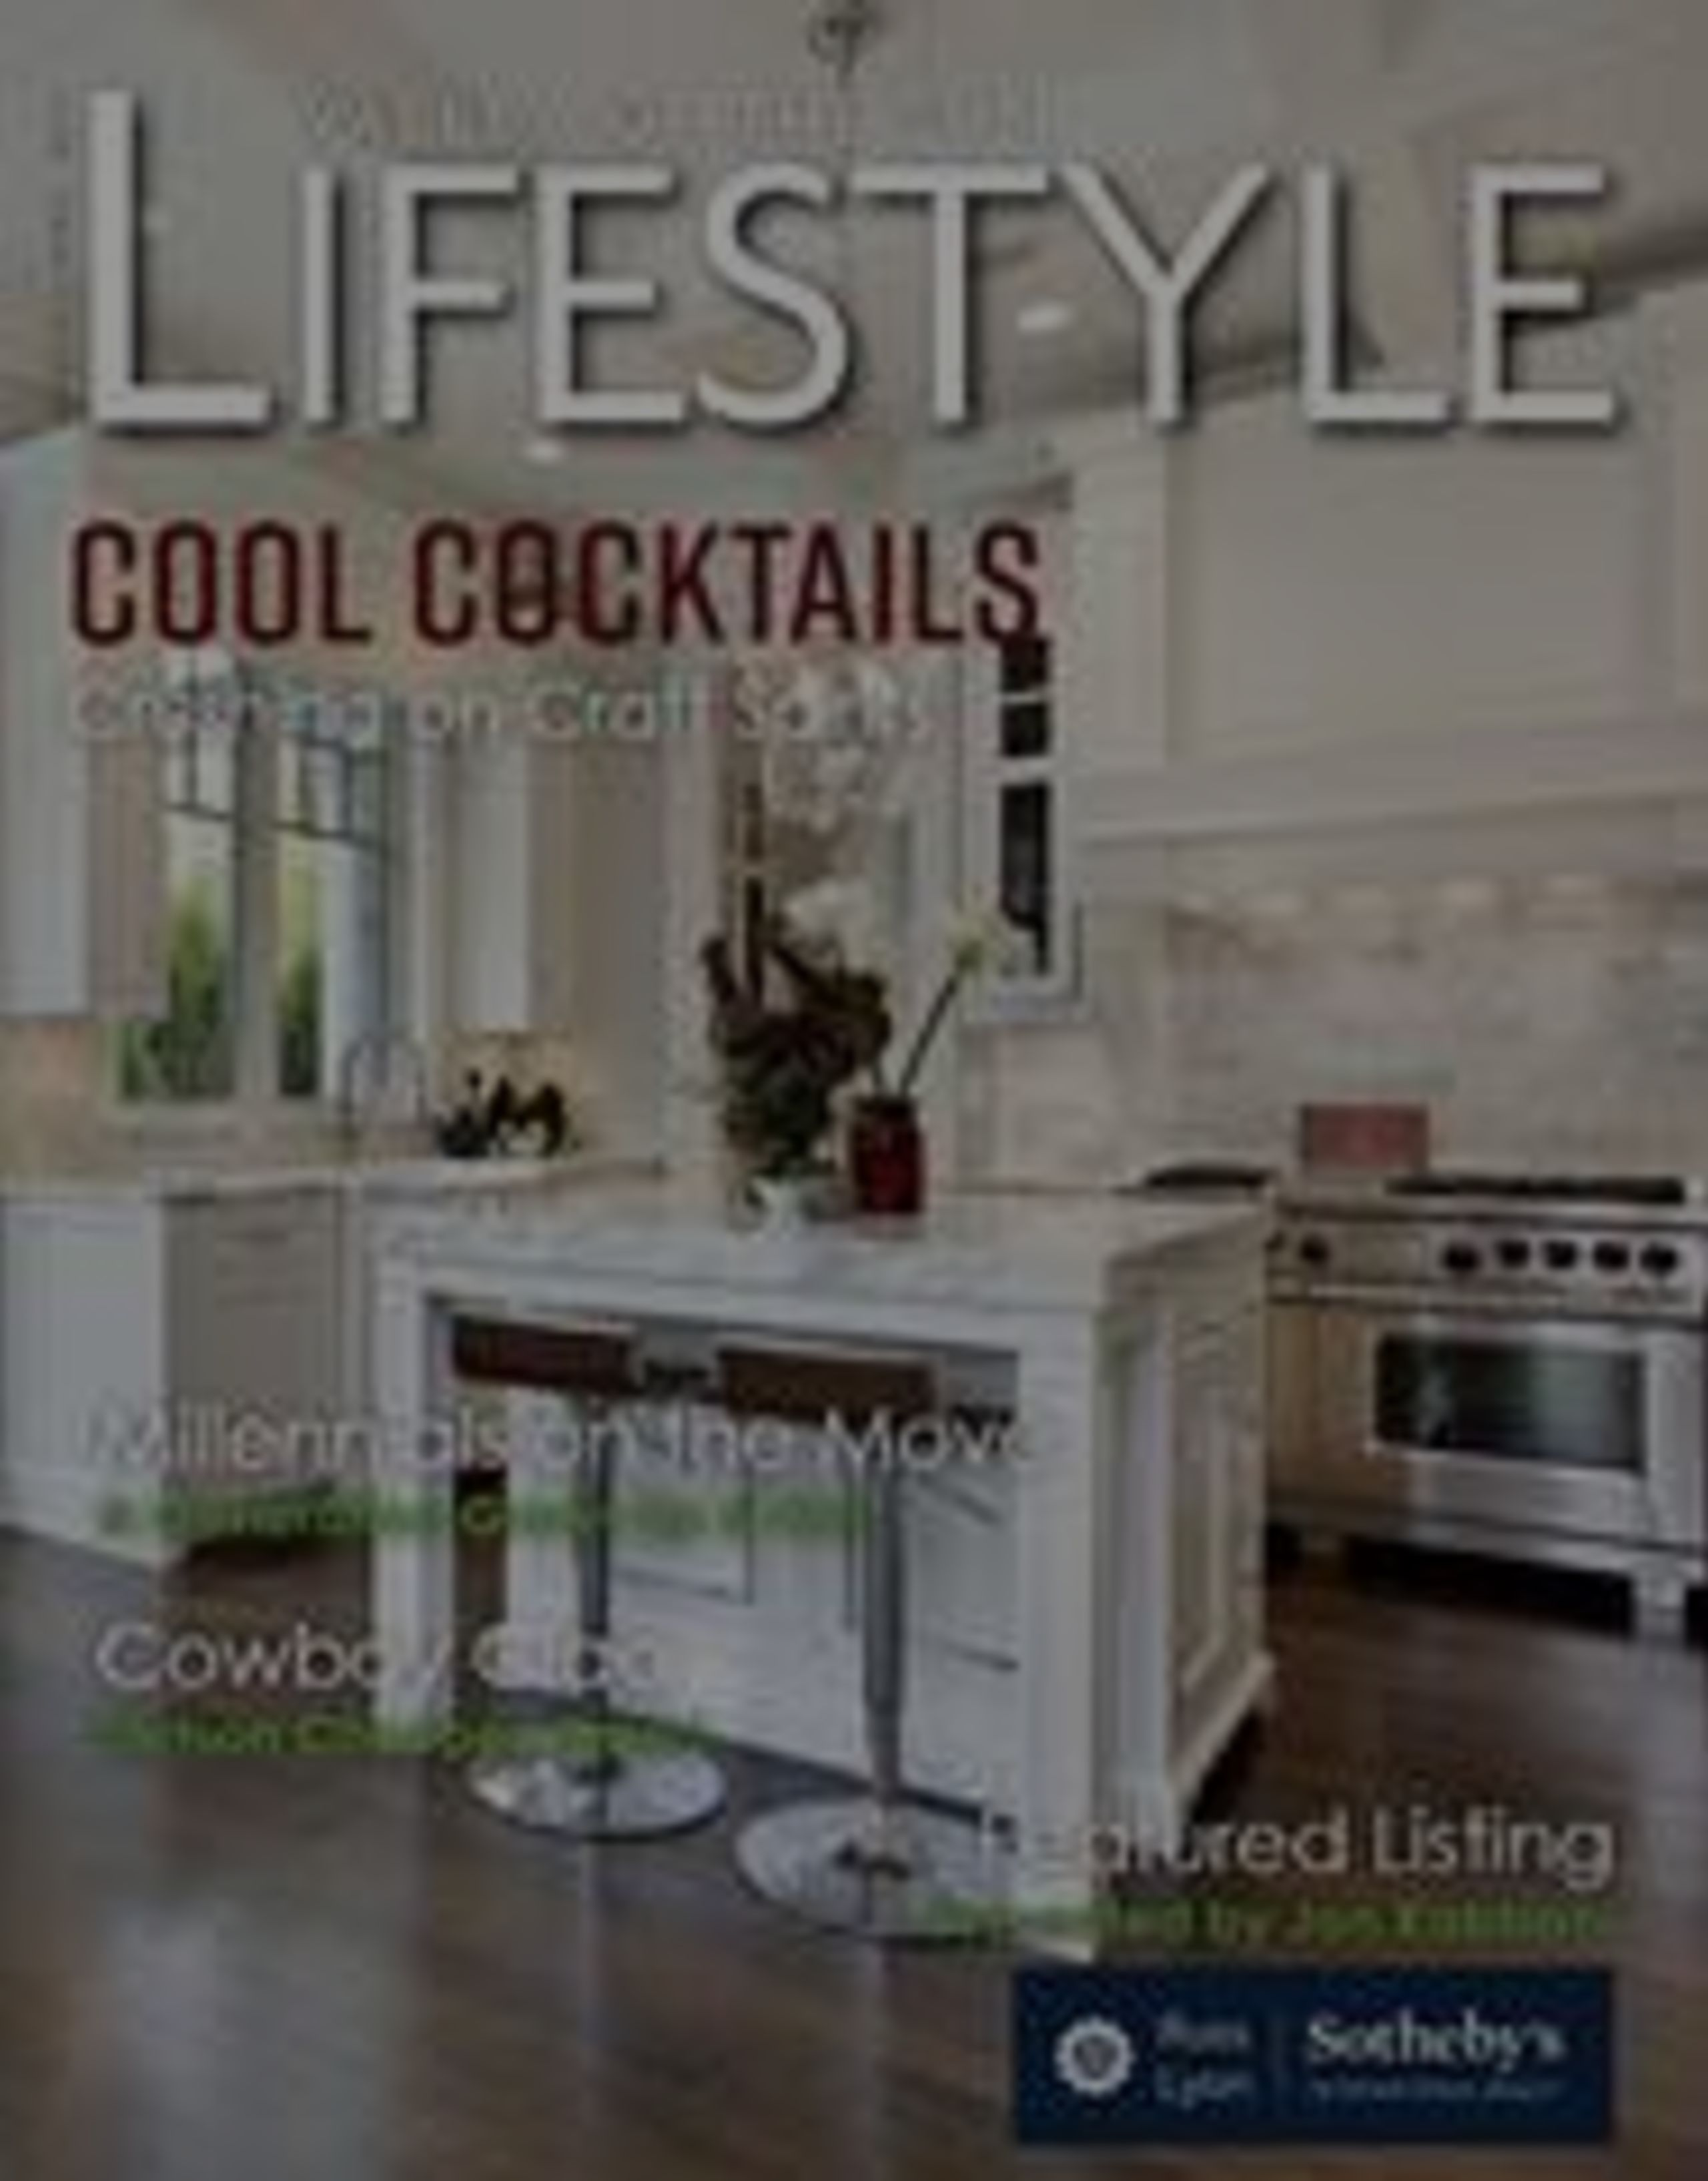 Lifestyle Newsletter Cool Cocktails